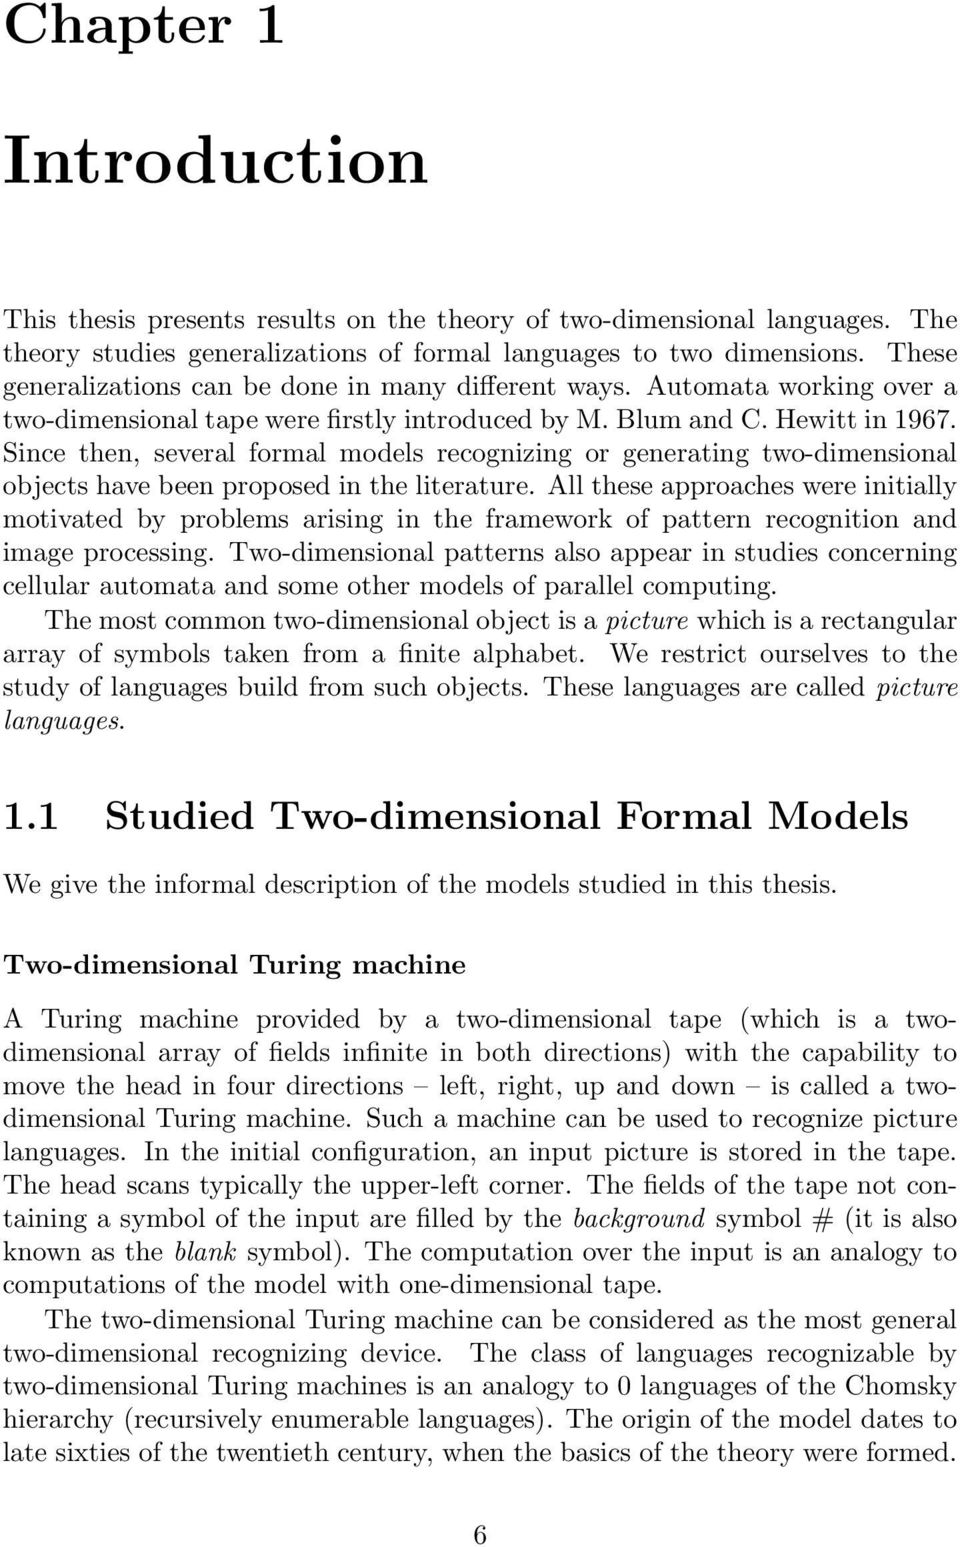 Since then, several formal models recognizing or generating two-dimensional objects have been proposed in the literature.